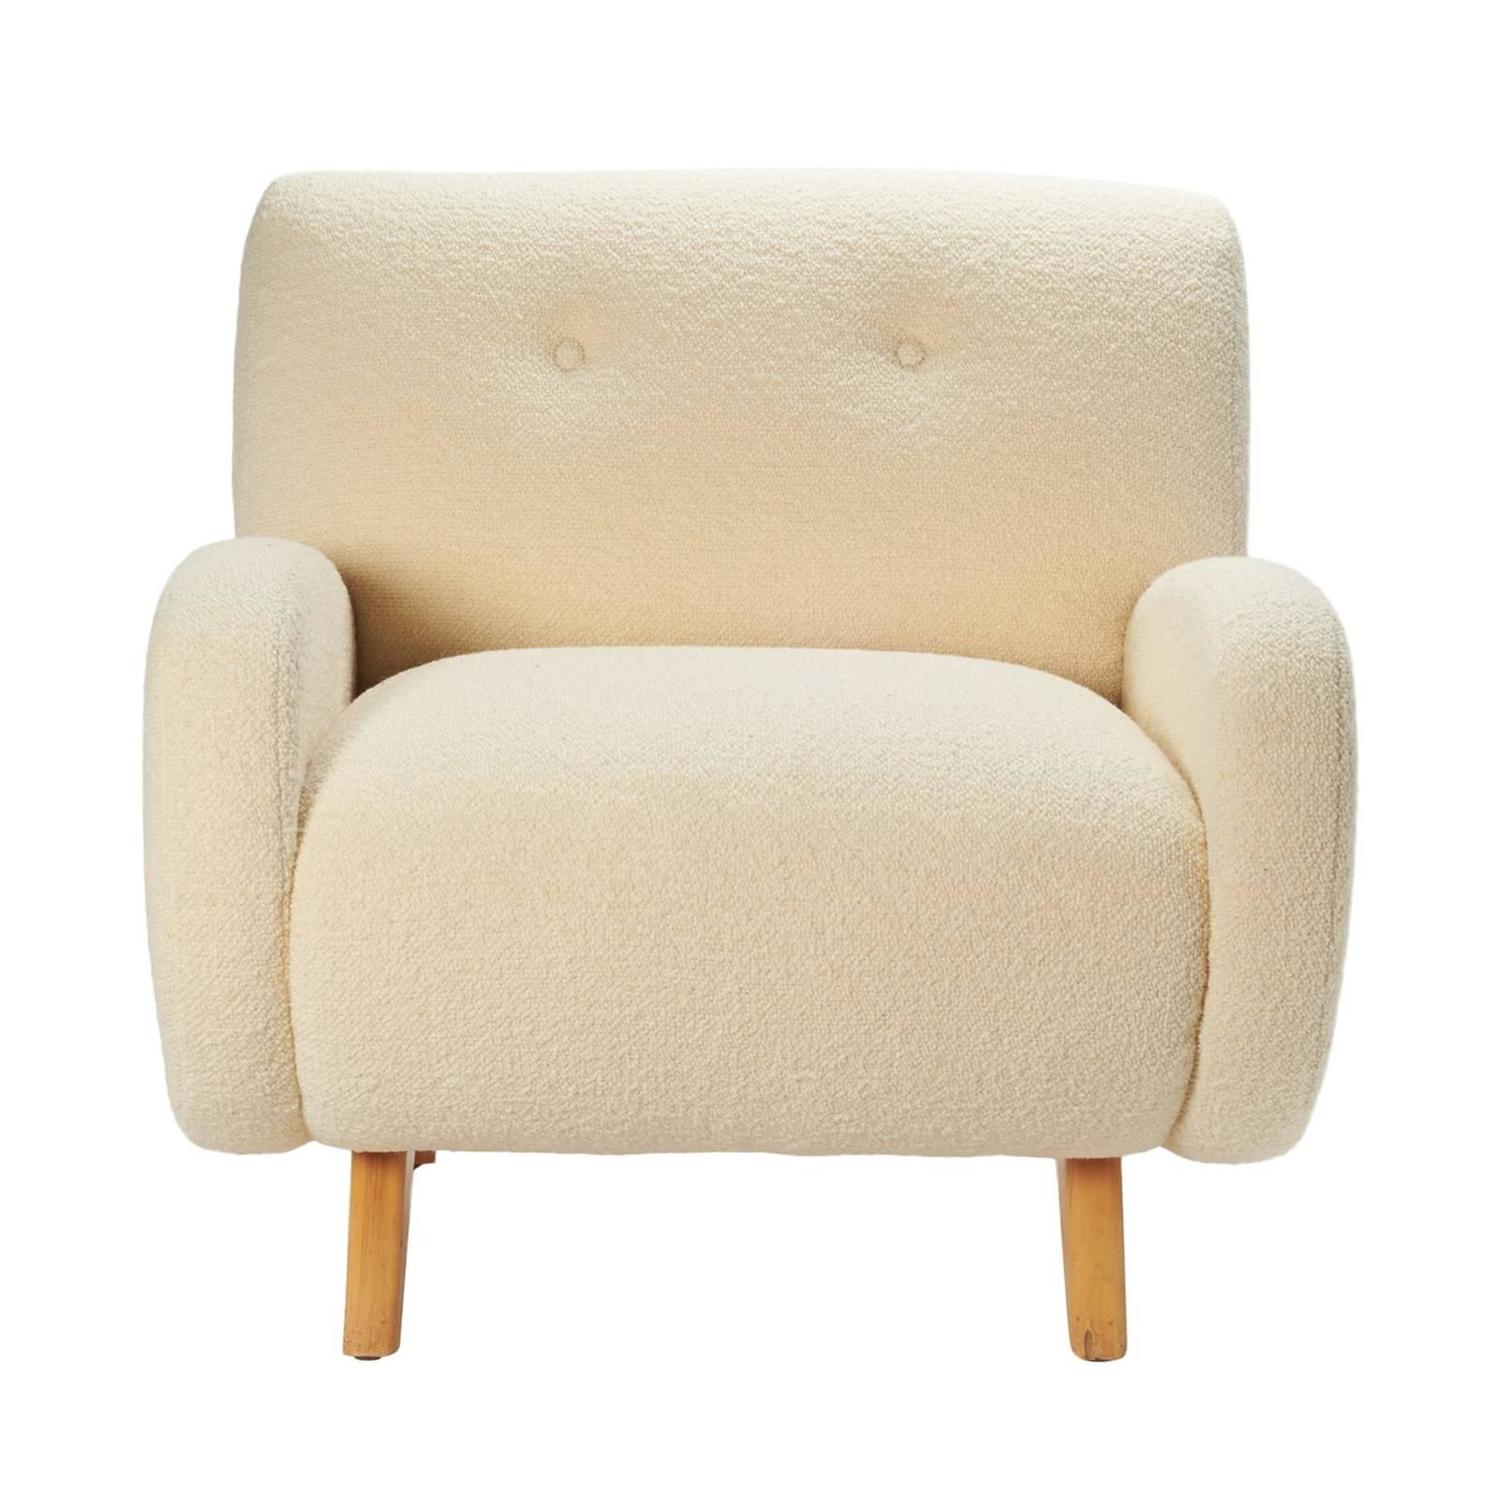 Oversized Mid Century Lounge Chair at 1stdibs